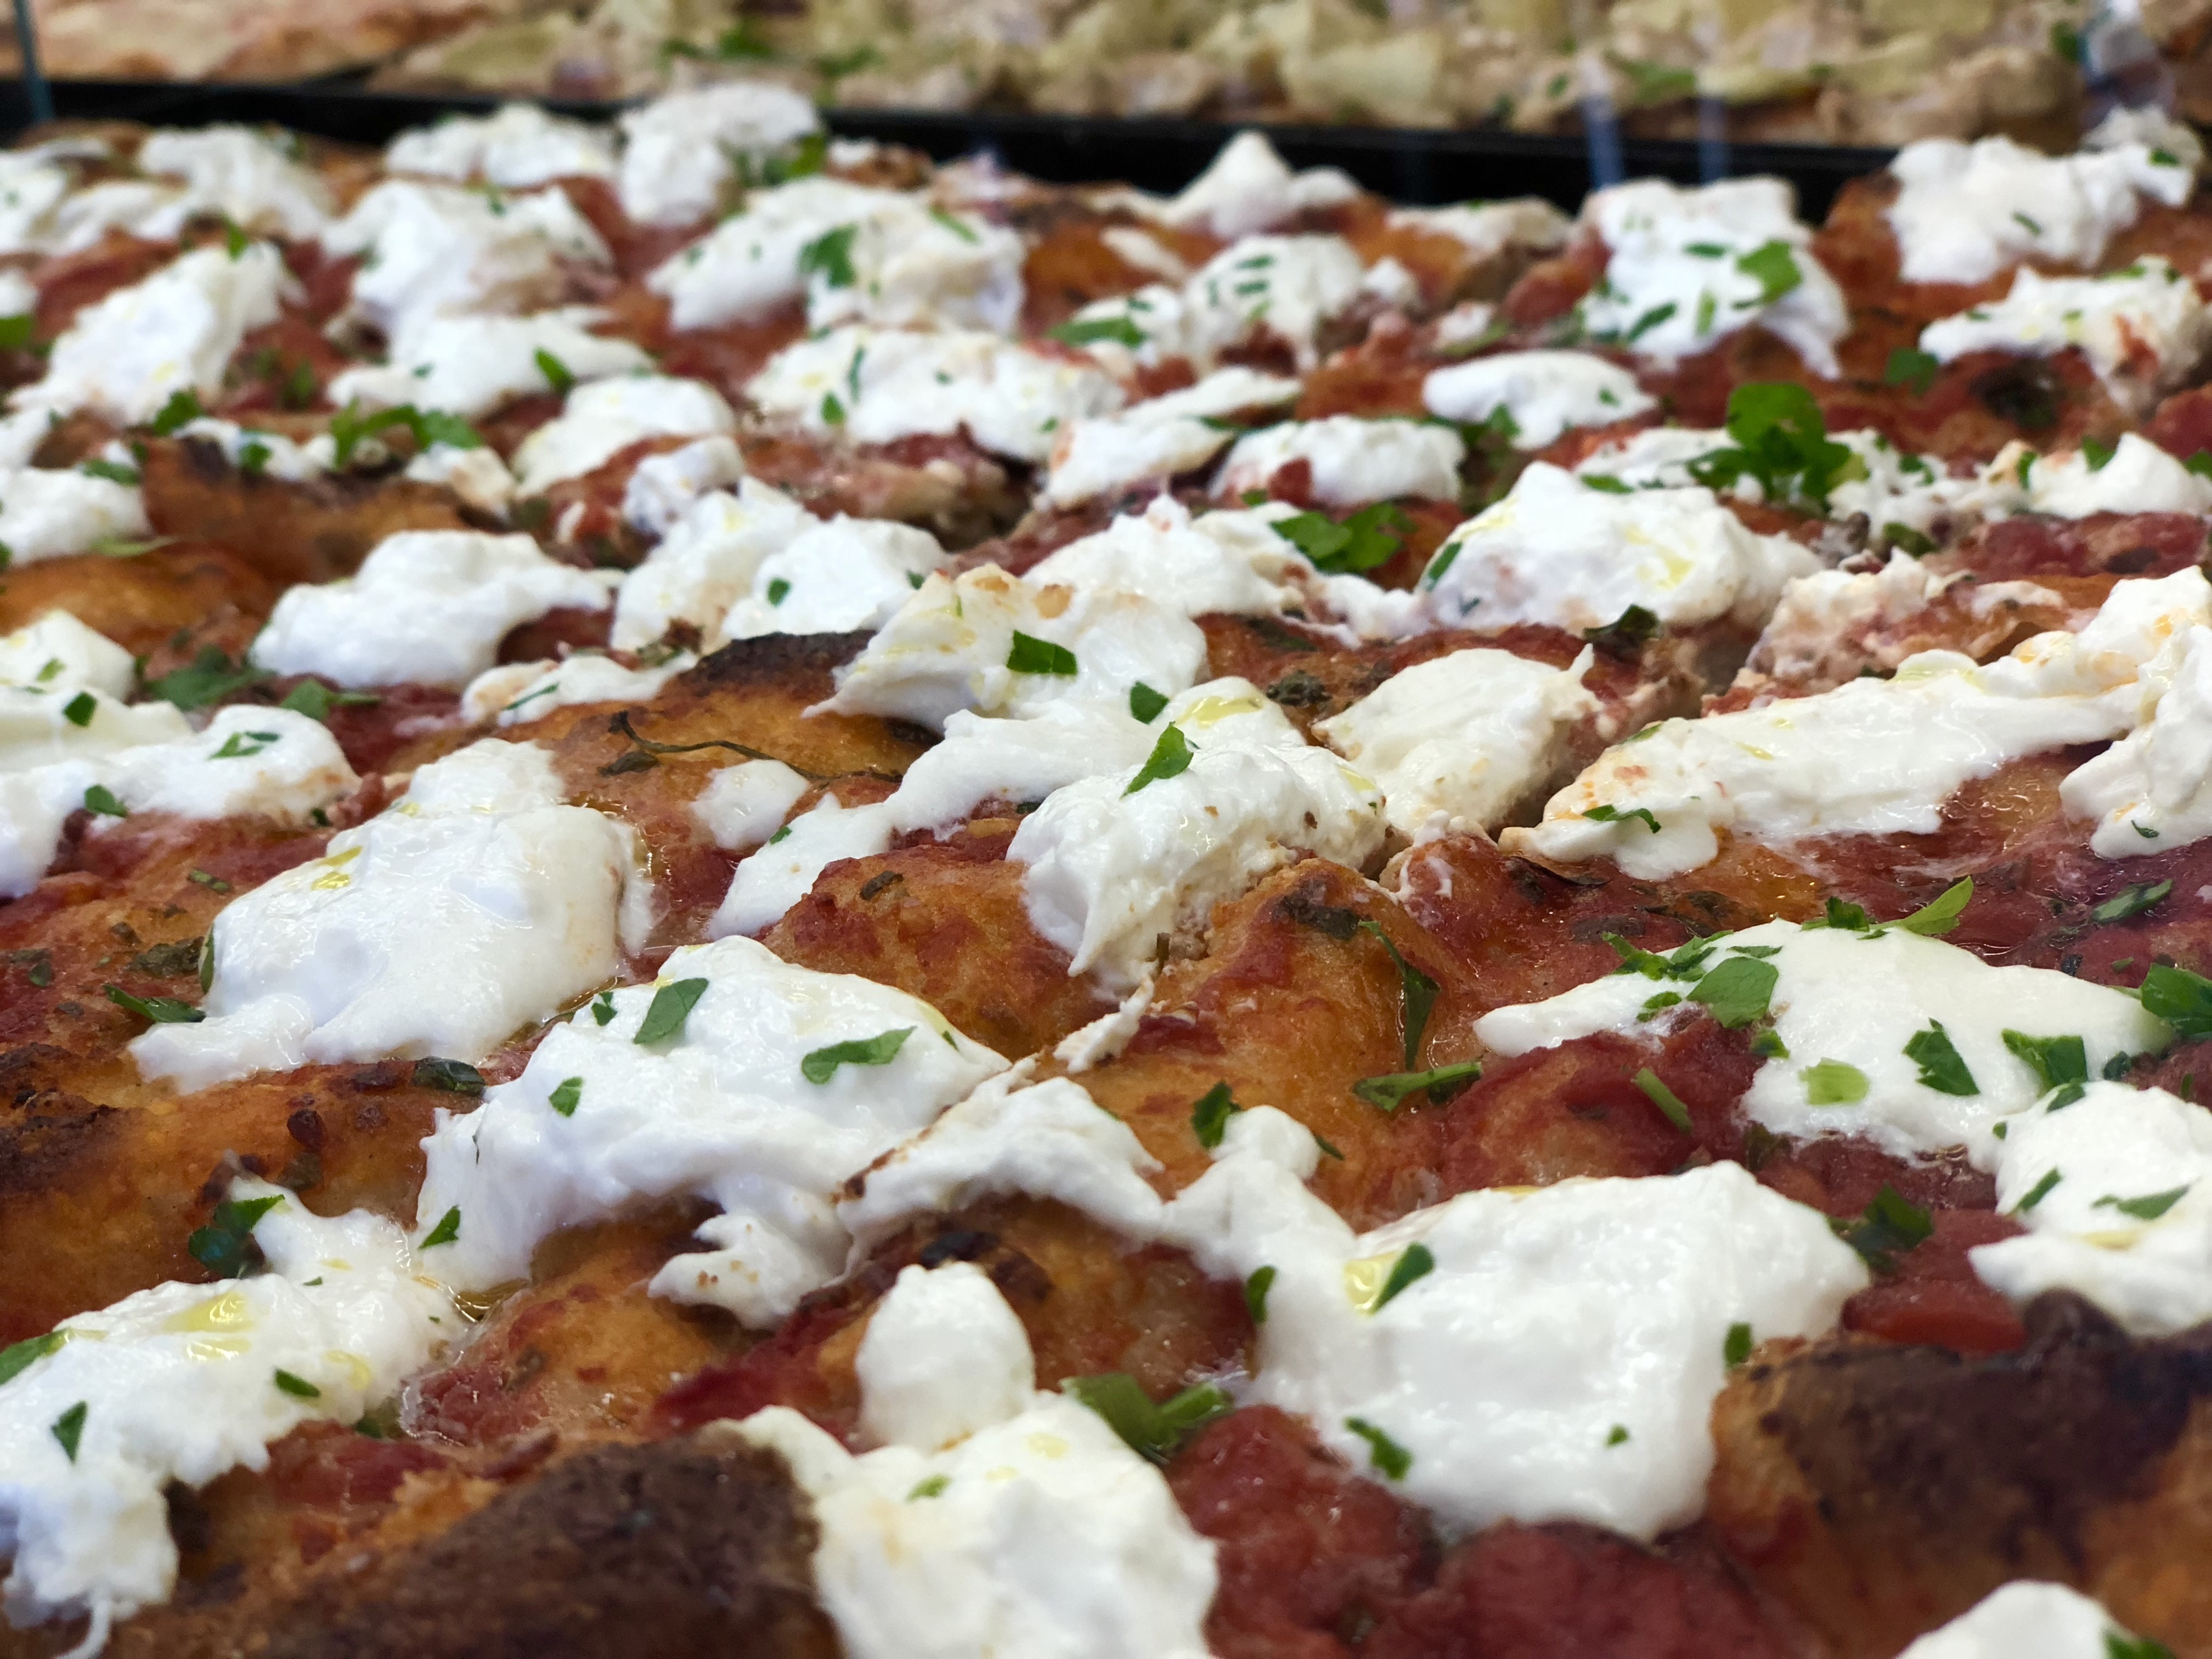 Slices and slices of burrata pizza from PQR